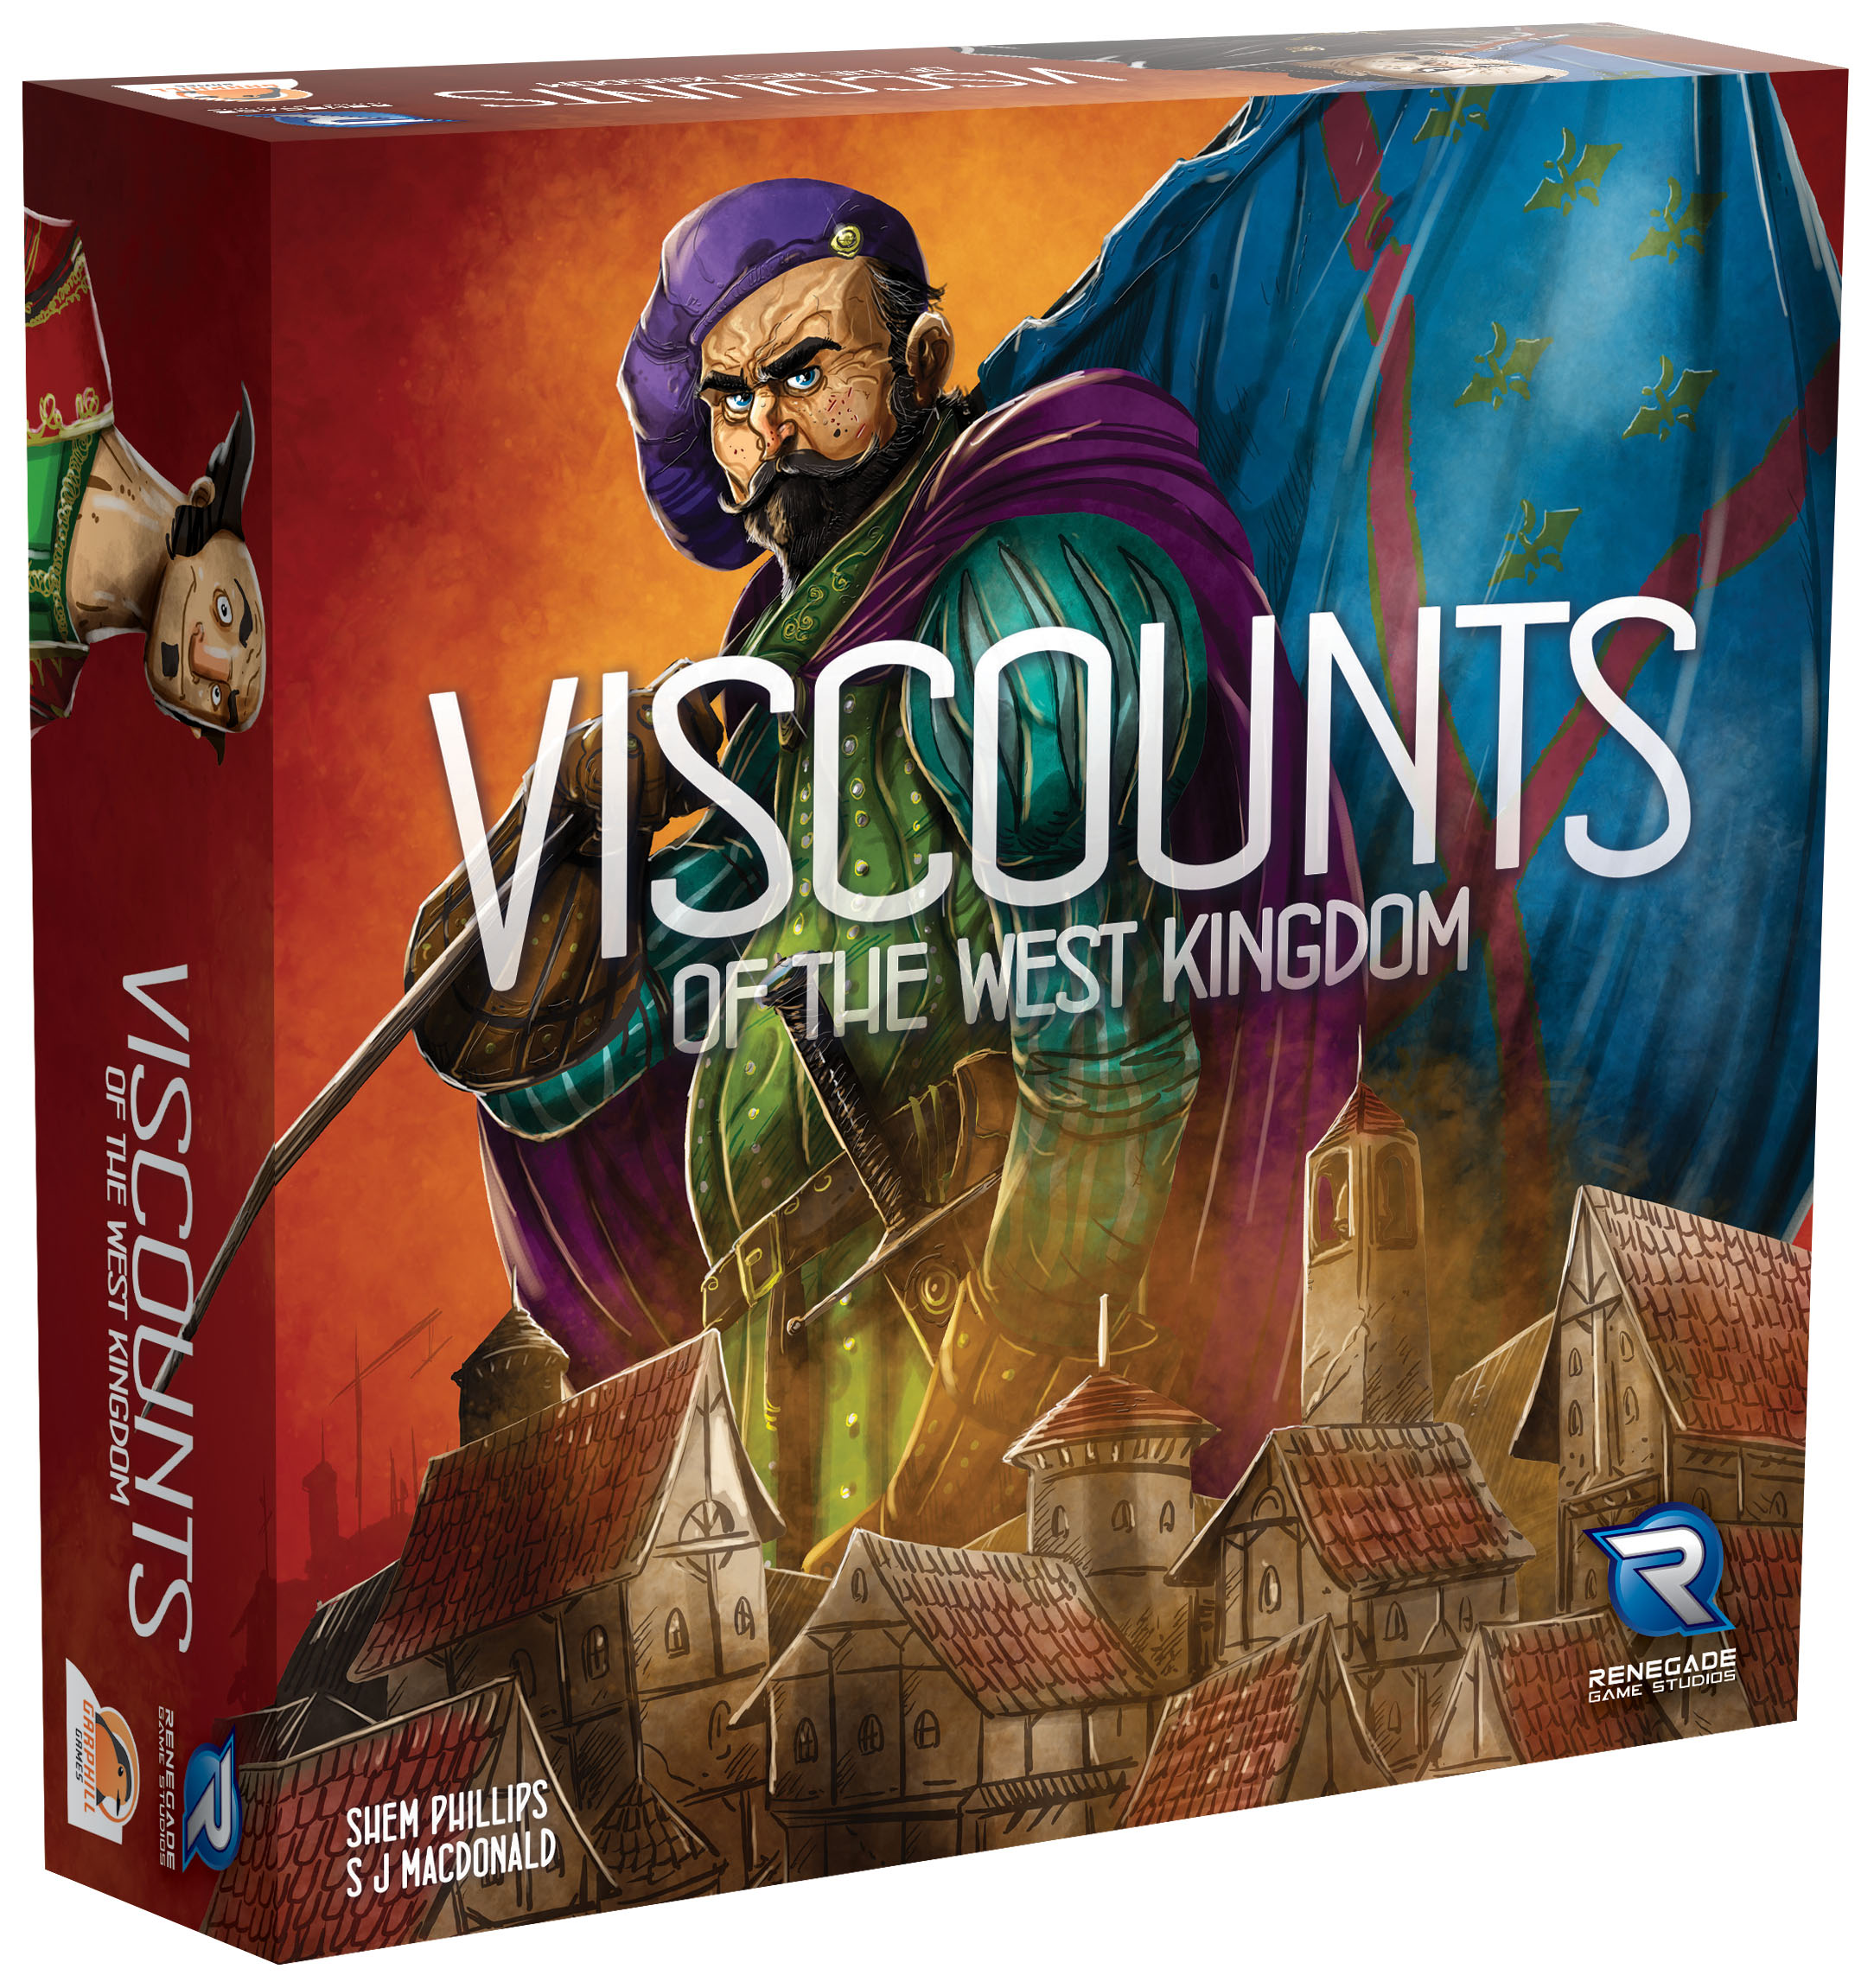 GTM #245 - Viscounts of the West Kingdom